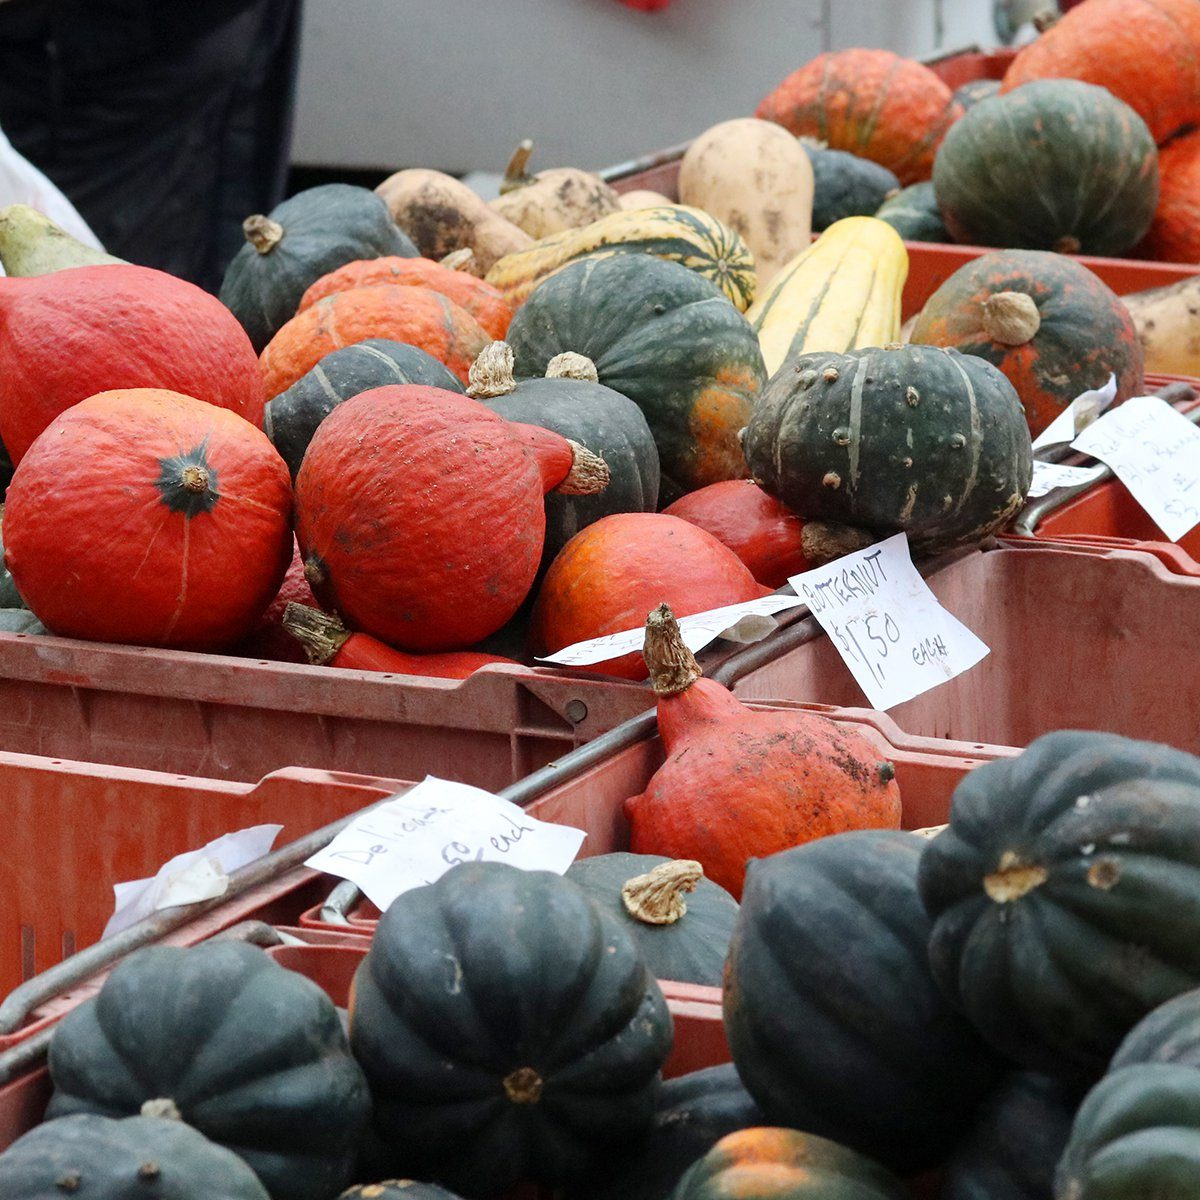 Farmers market goods display. Colorful winter squashes for sale in boxes at the autumn seasonal farmers market. Agriculture, farming and small business background. Harvest concept.; Shutterstock ID 1128537929; Job (TFH, TOH, RD, BNB, CWM, CM): TOH